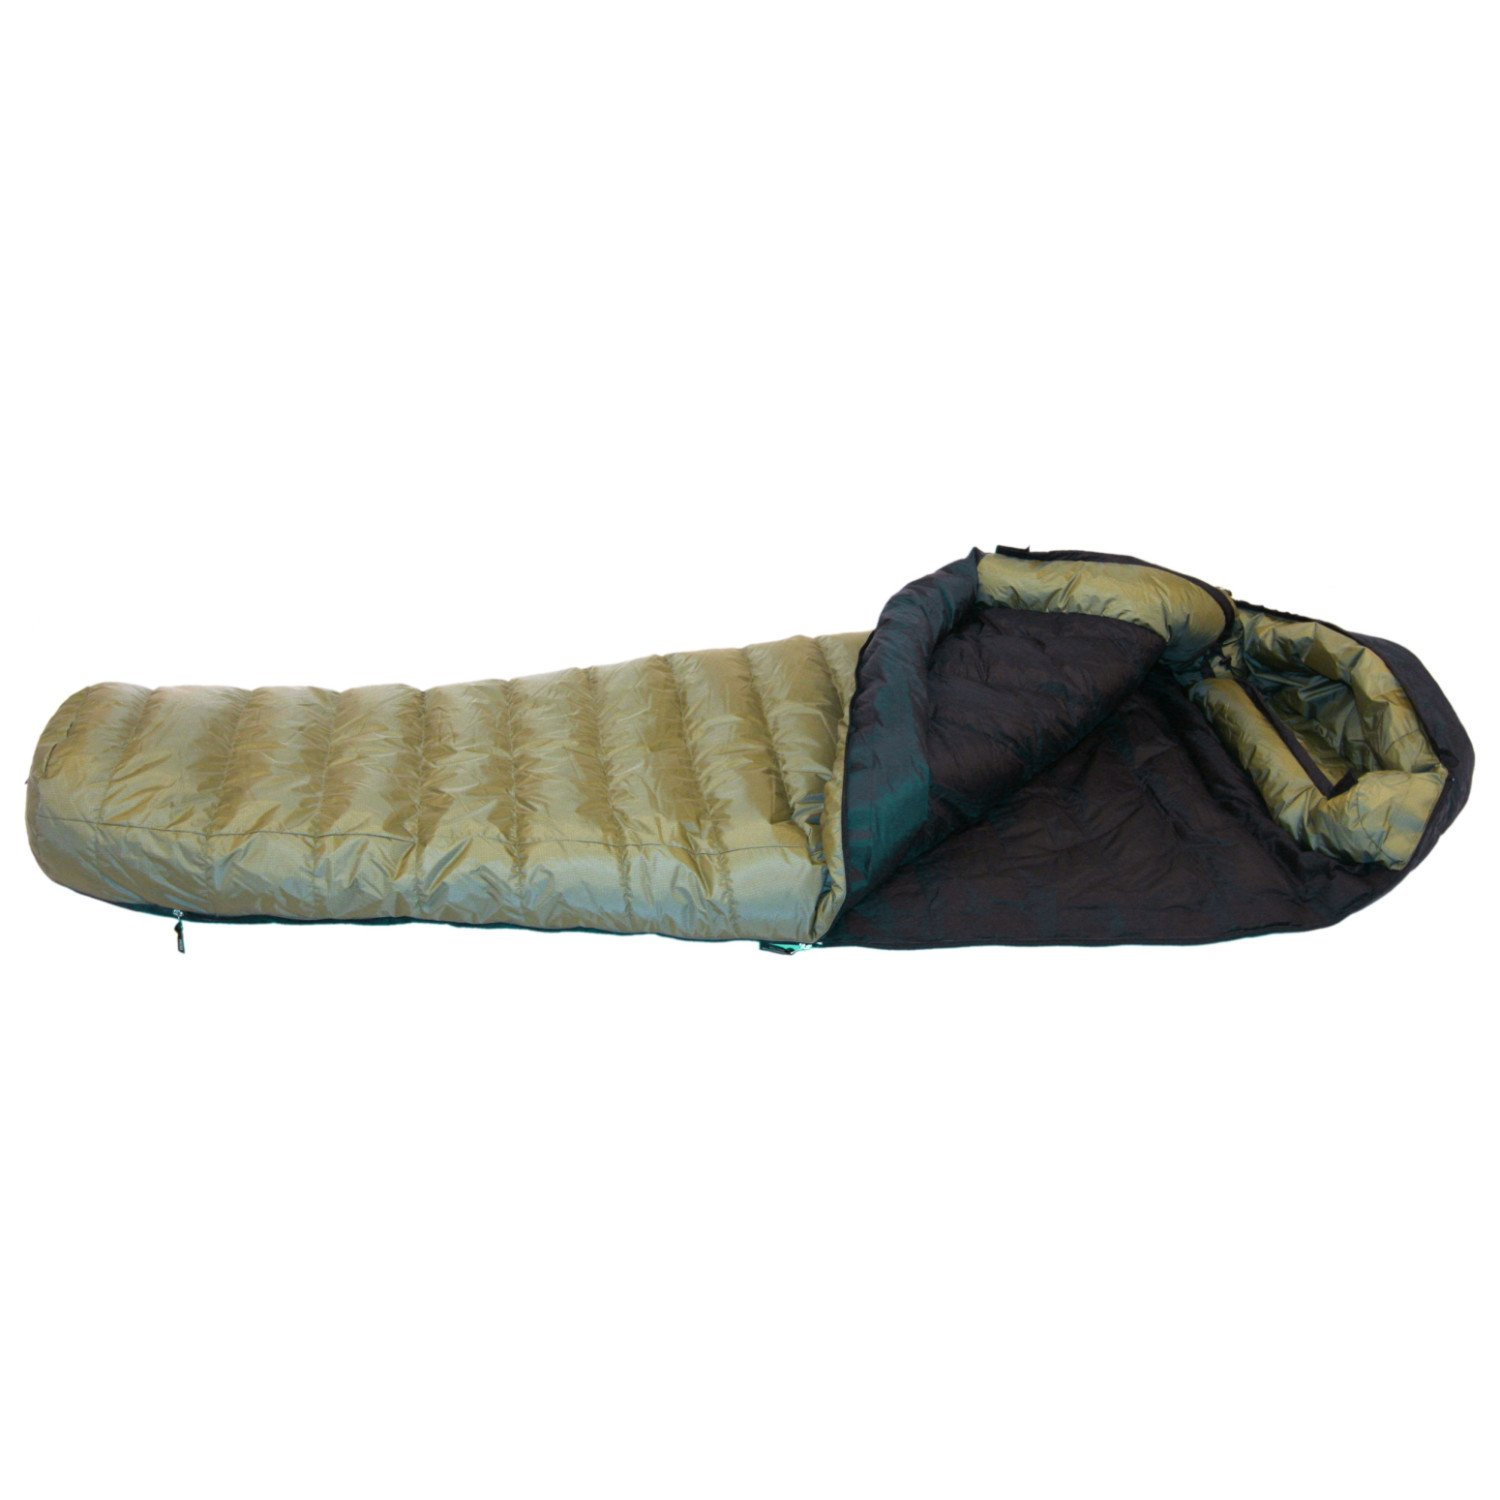 Western Mountaineering Badger LZ Gore WindStopper Sleeping Bag - 7'0 by Western Mountaineering (Image #1)